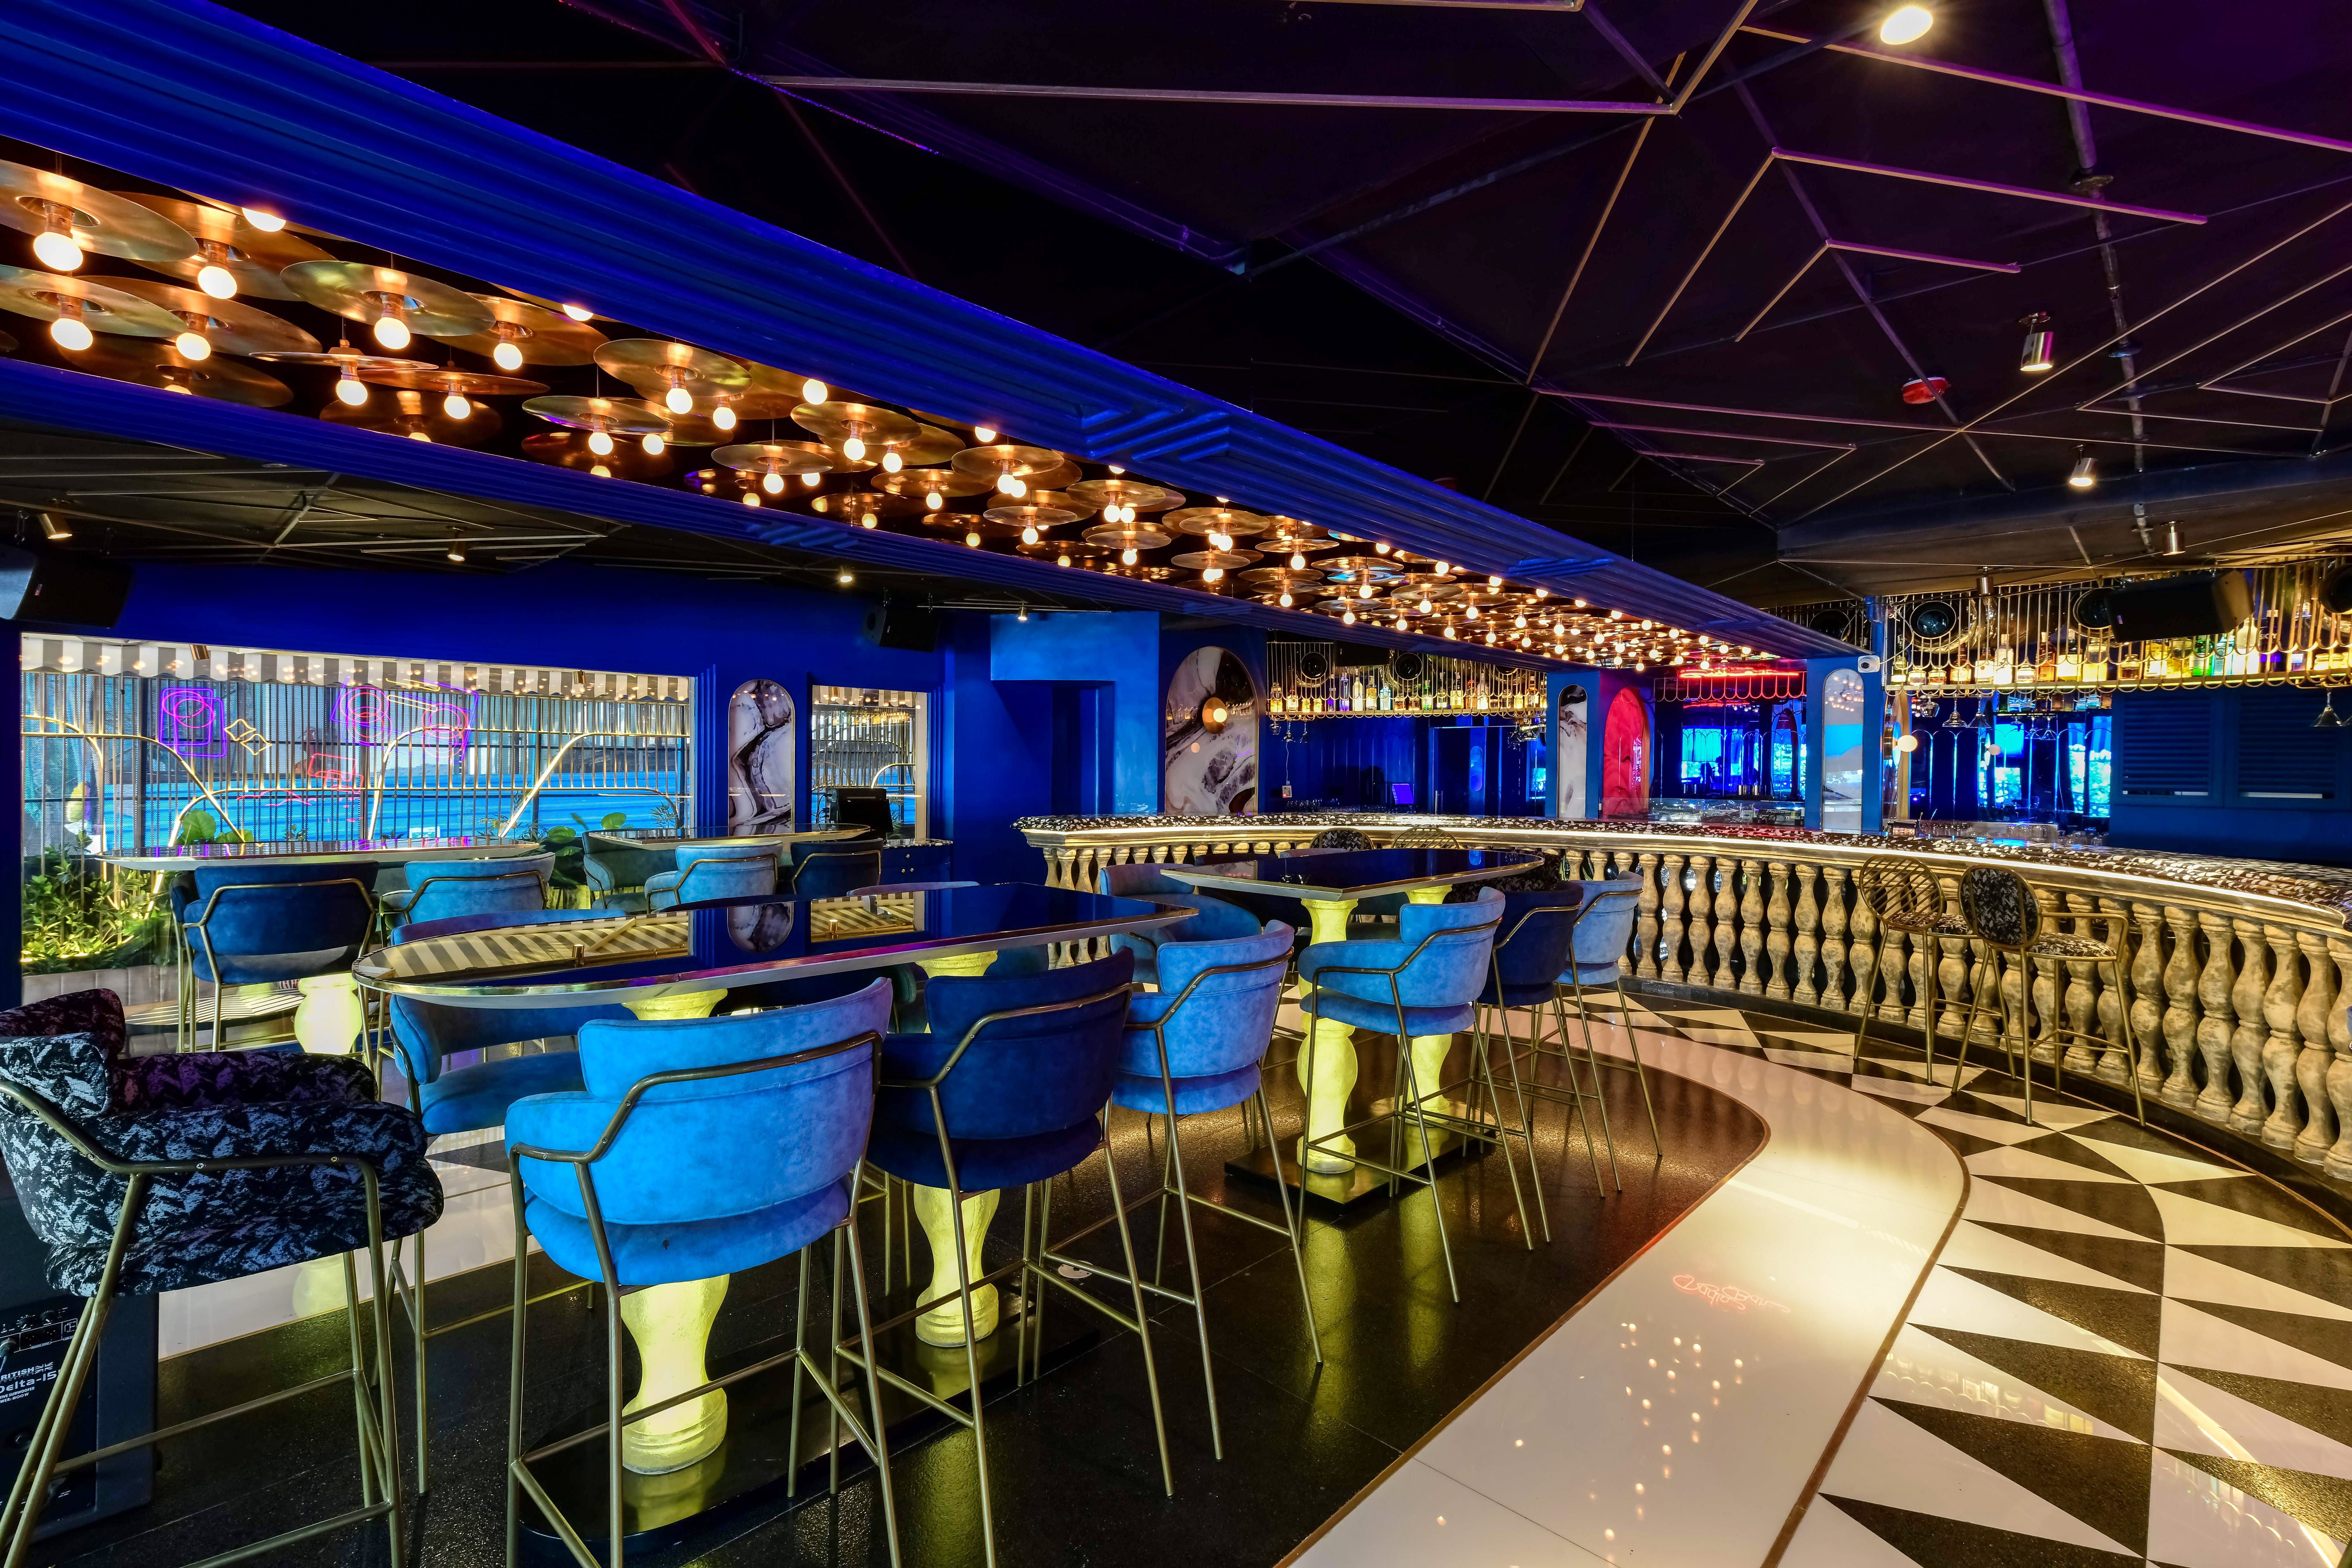 Lighting,Building,Architecture,Night,Restaurant,Bar,Interior design,Leisure,Sport venue,City